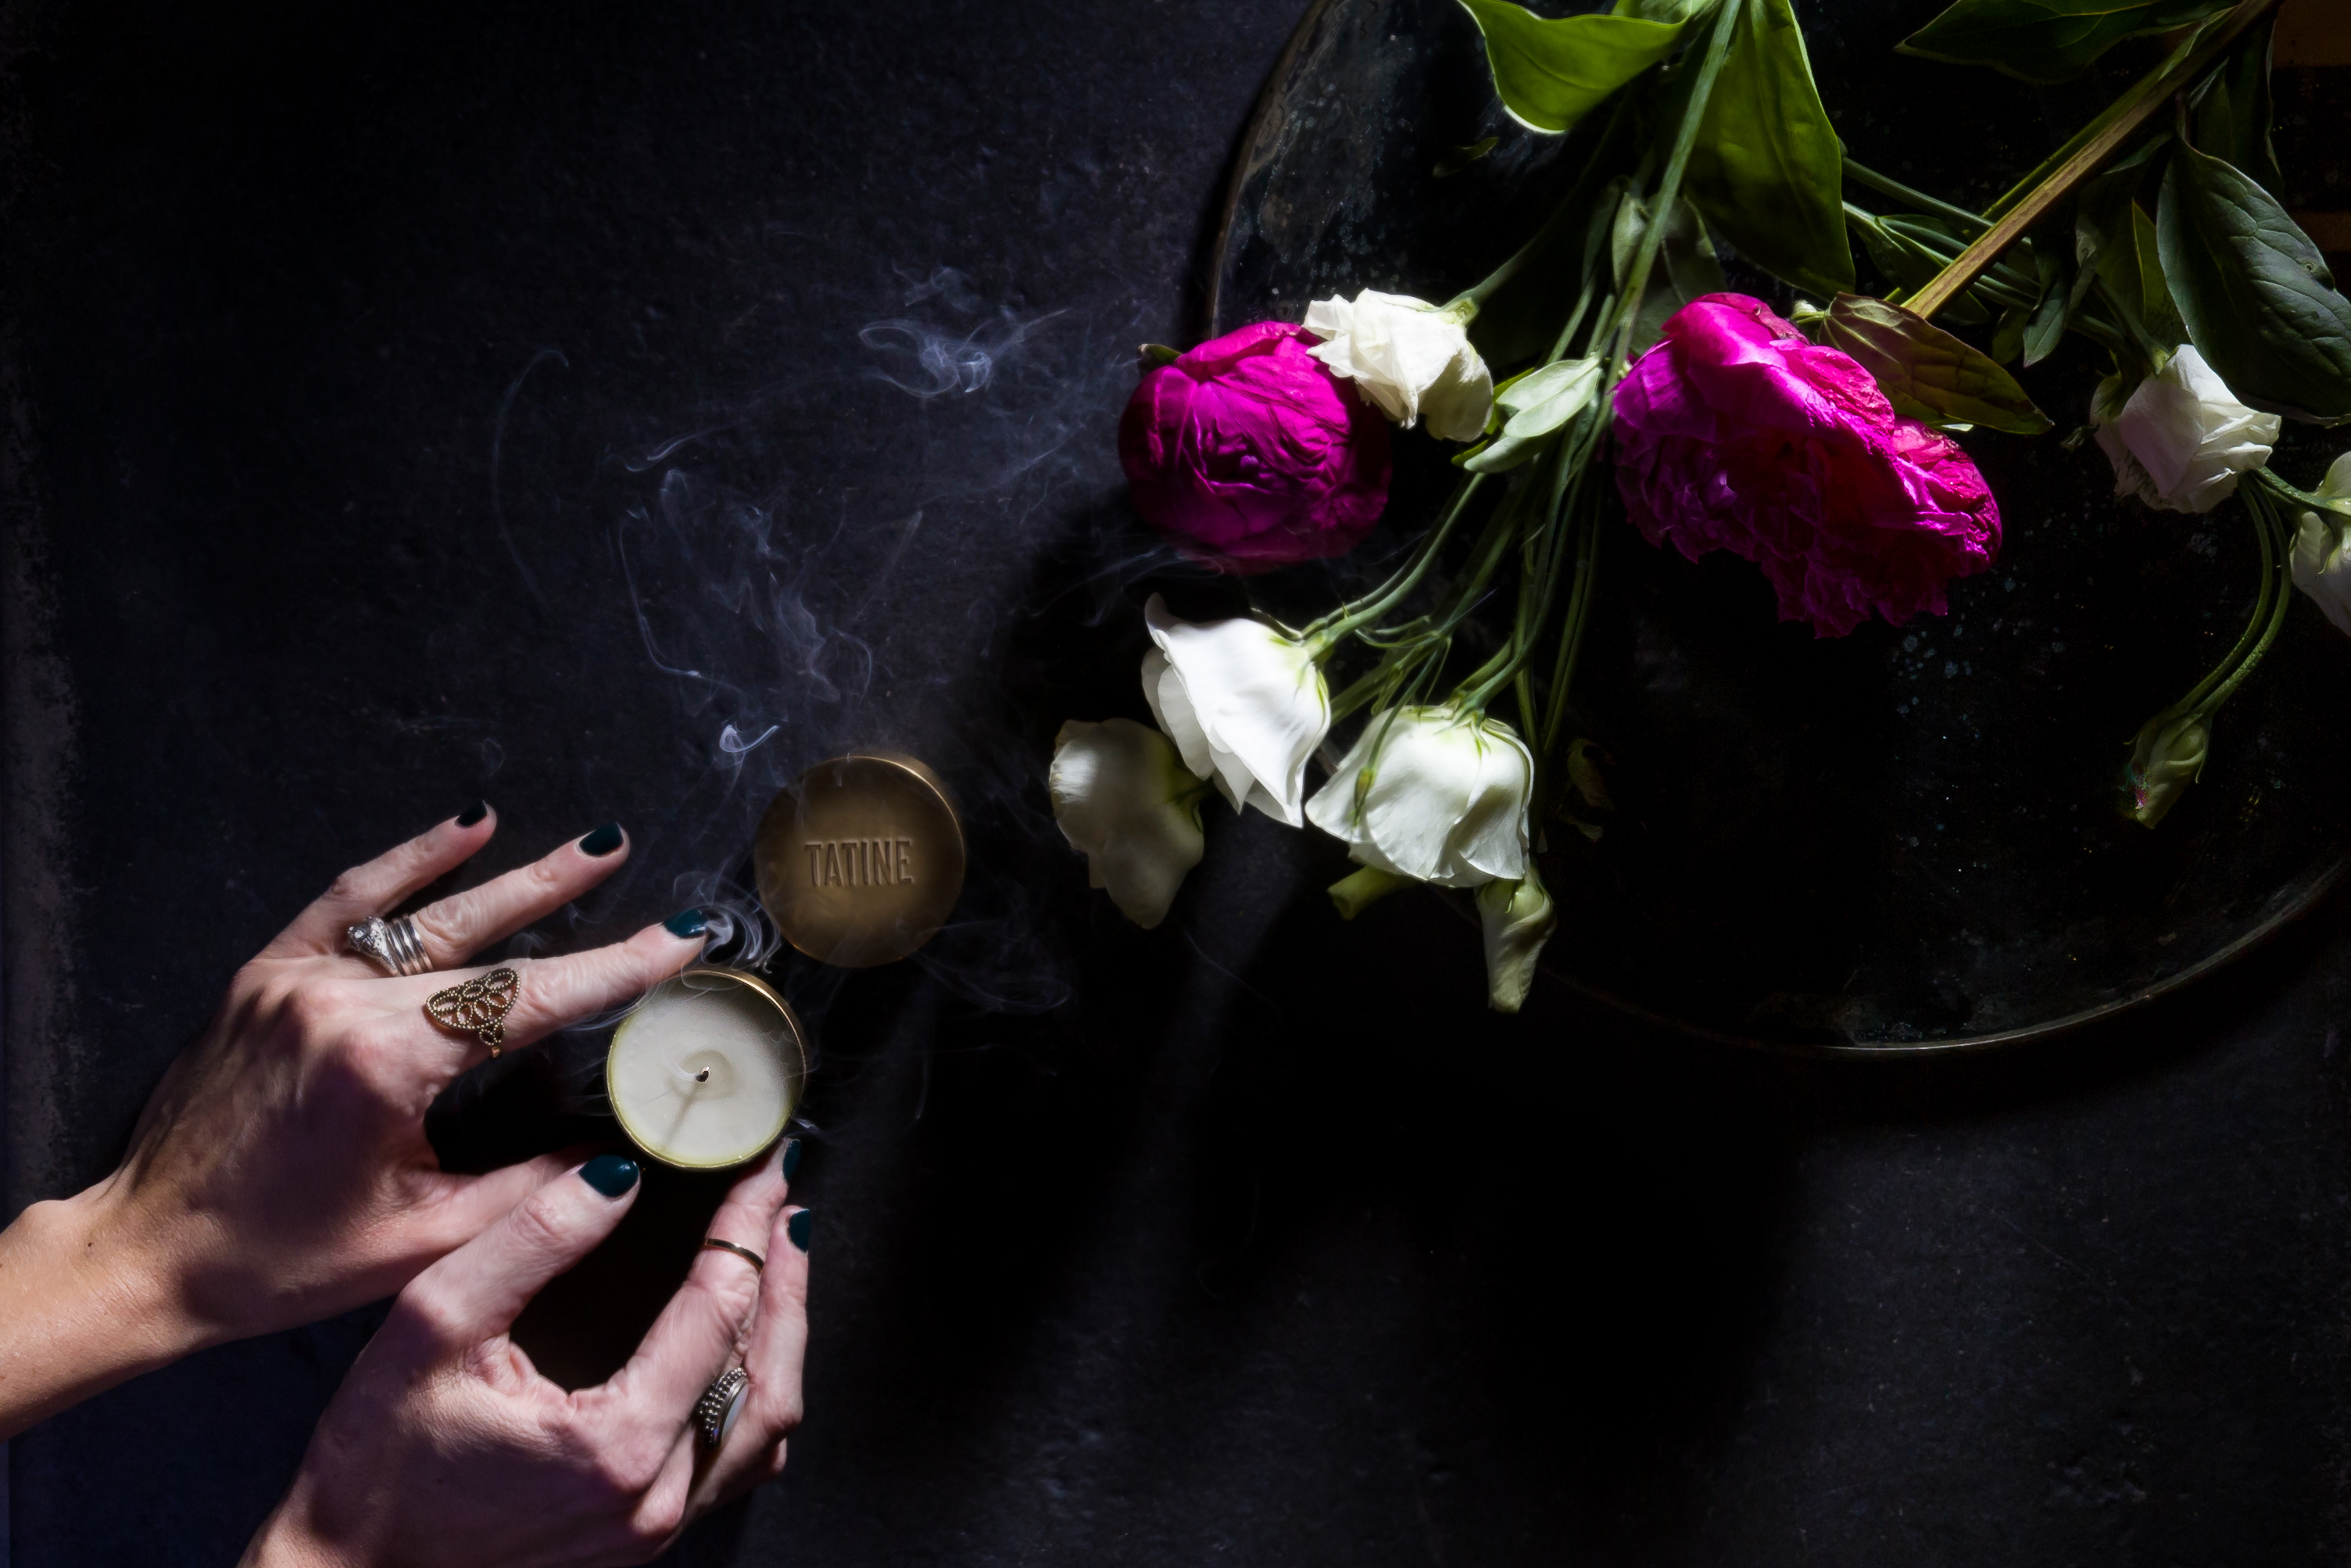 Tatine Manufactory Candle Hands Lifestyle Photography Rebecca Matt Snyder Alamode Designs Canton Columbus Chicago